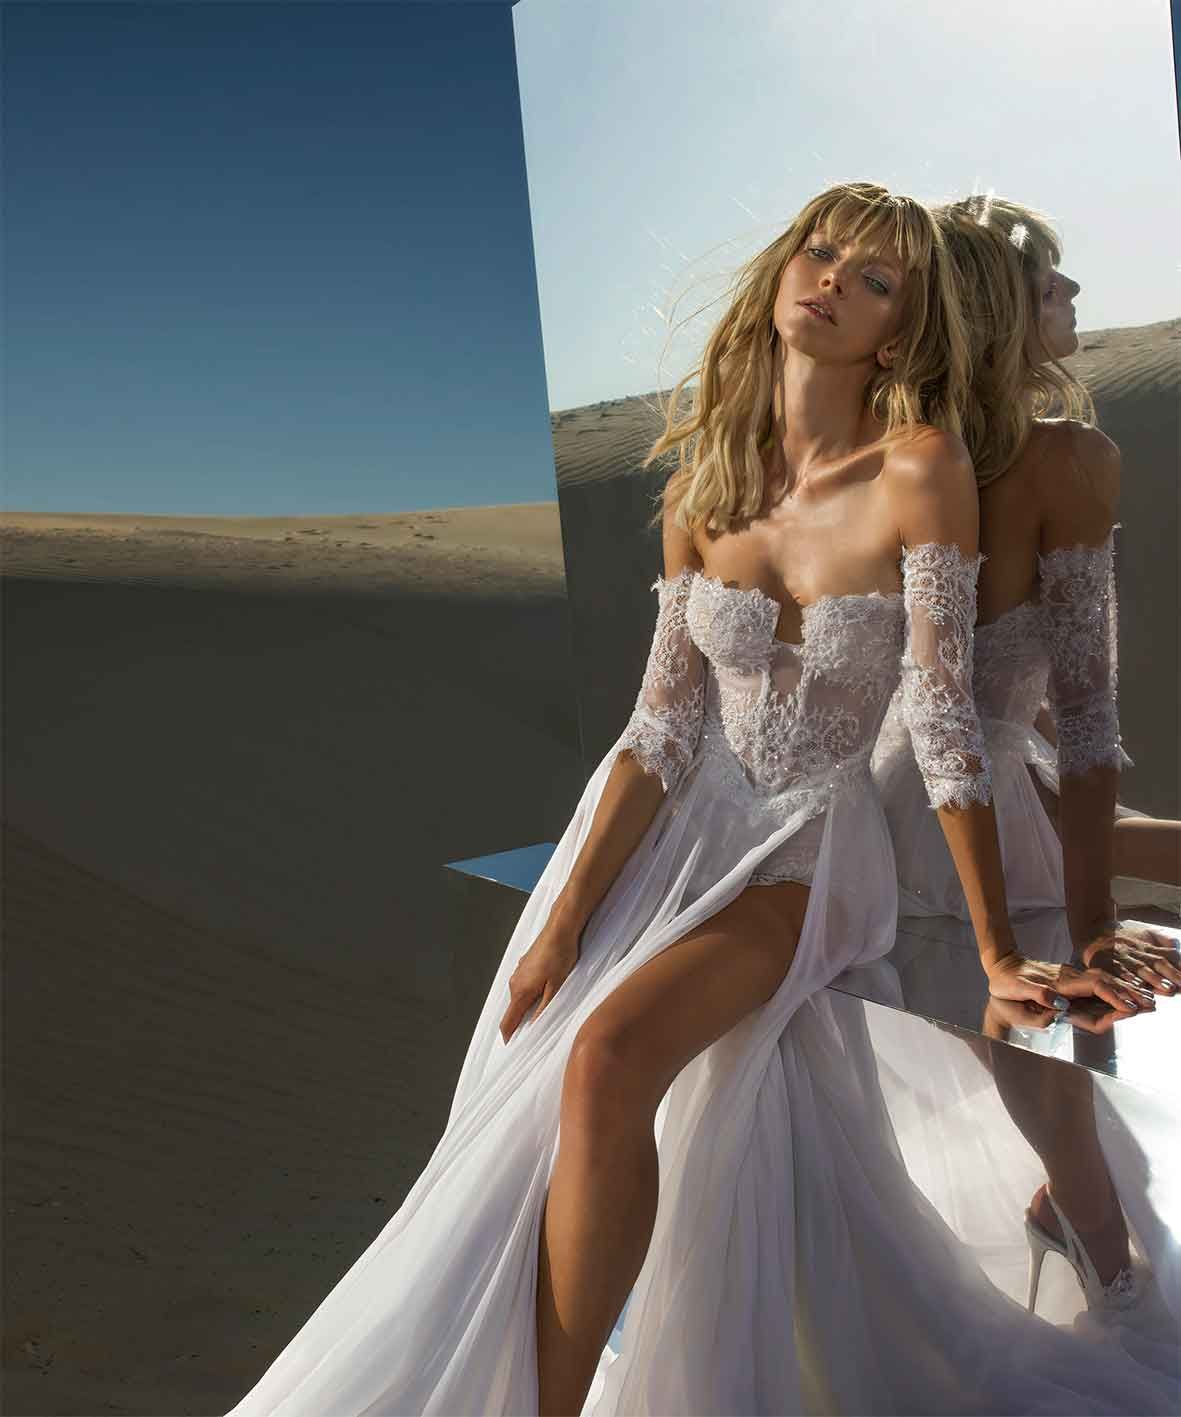 Pnina Tornai 2019 Wedding Dresses: Design: Fragile Collection By Pnina Tornai With